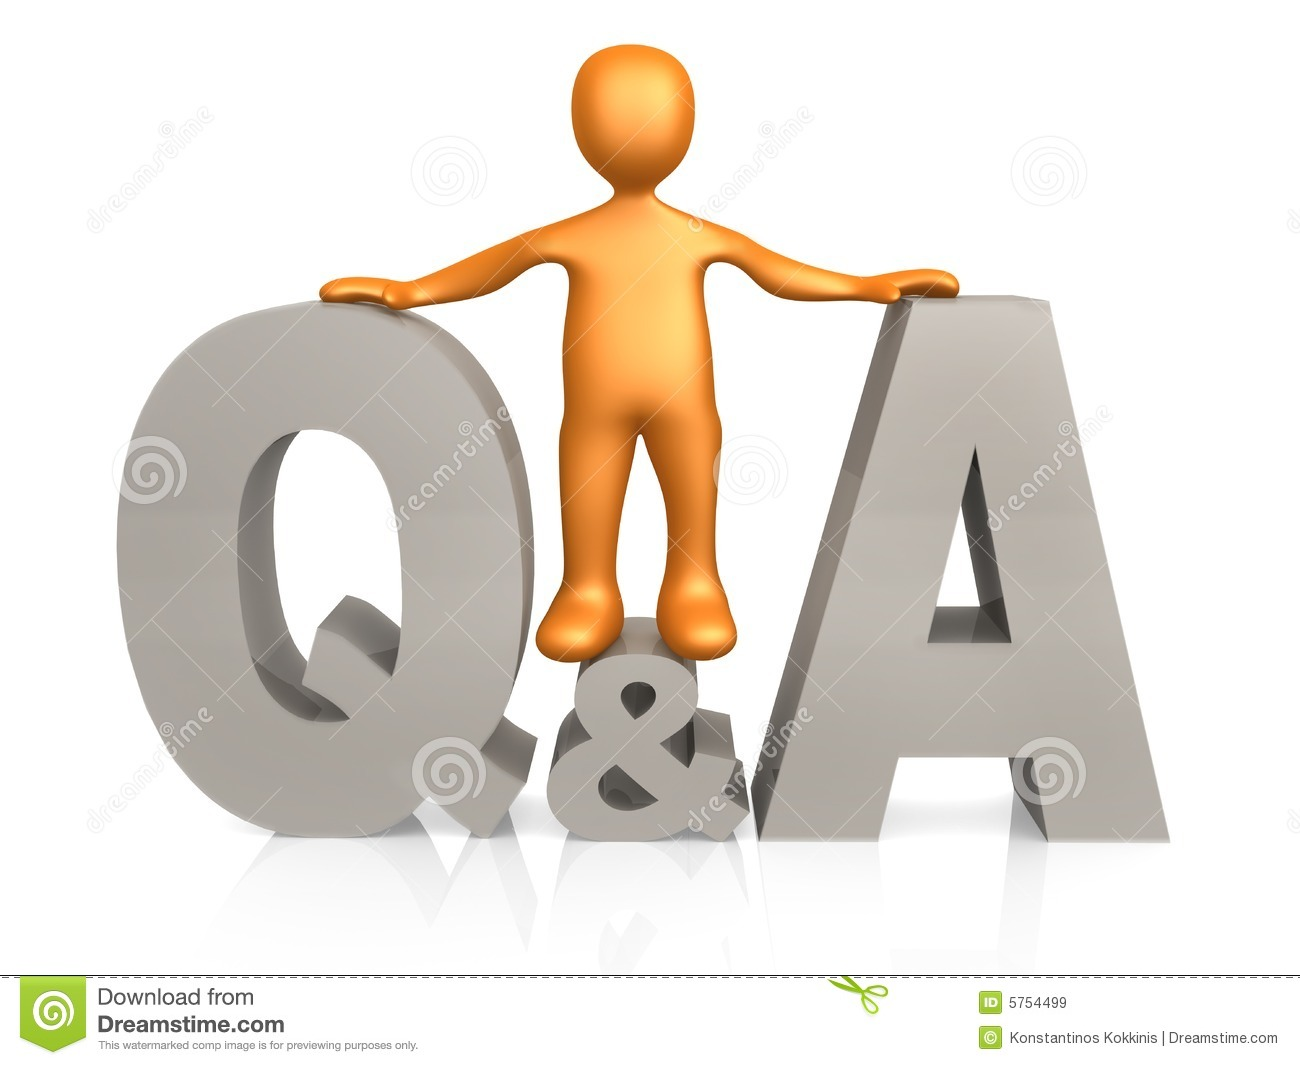 international business questions Business conversation questions from teflpedia  would you prefer to work in a large international company or a small local  esl conversation questions - business.